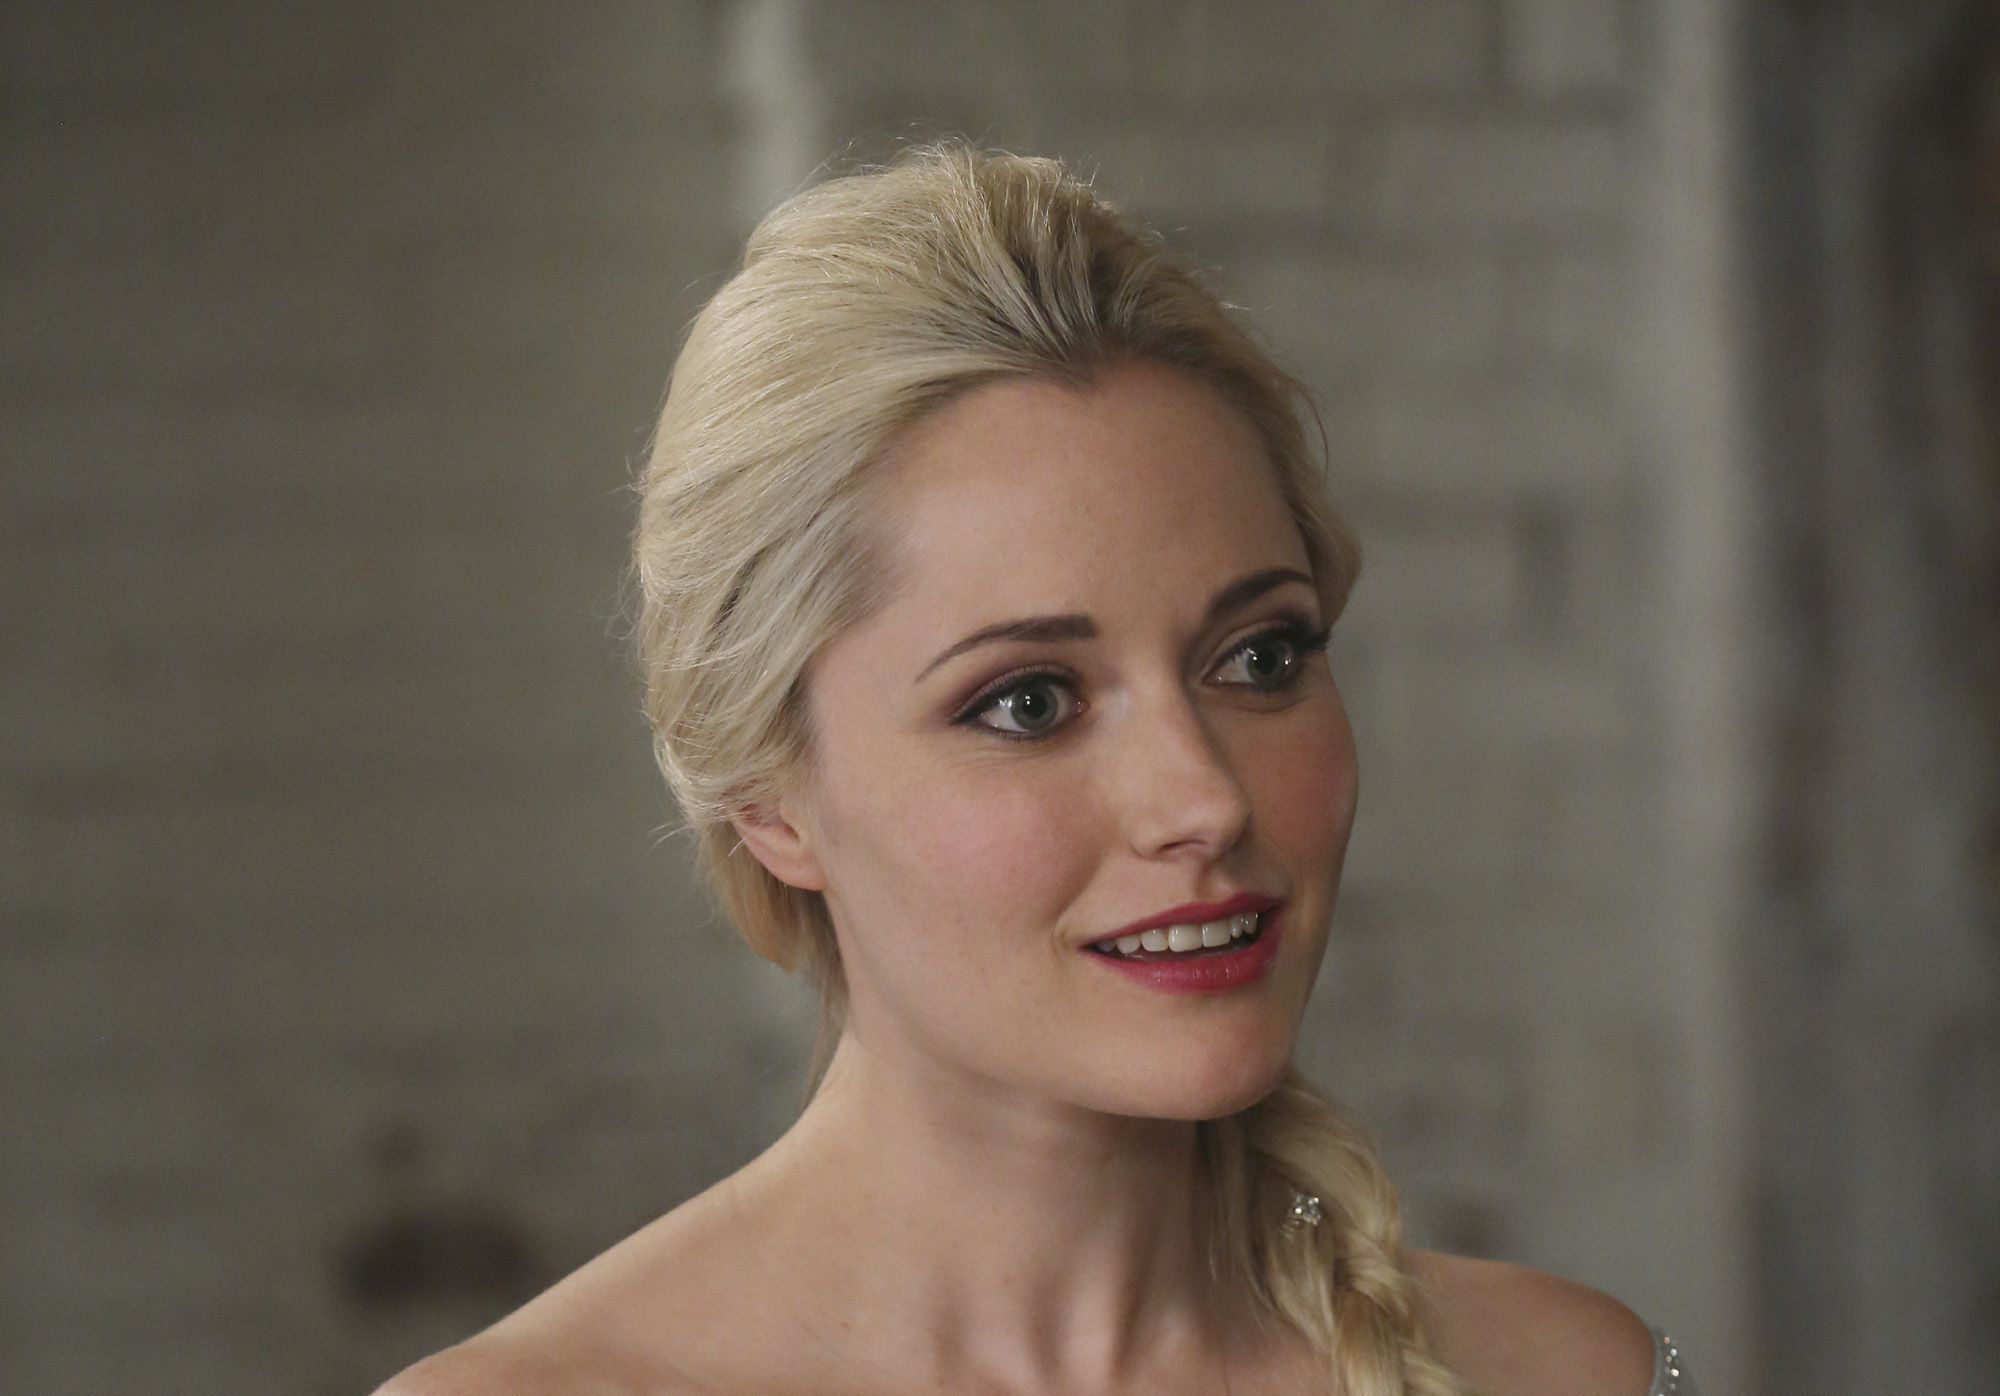 georgina haig wallpapers backgrounds